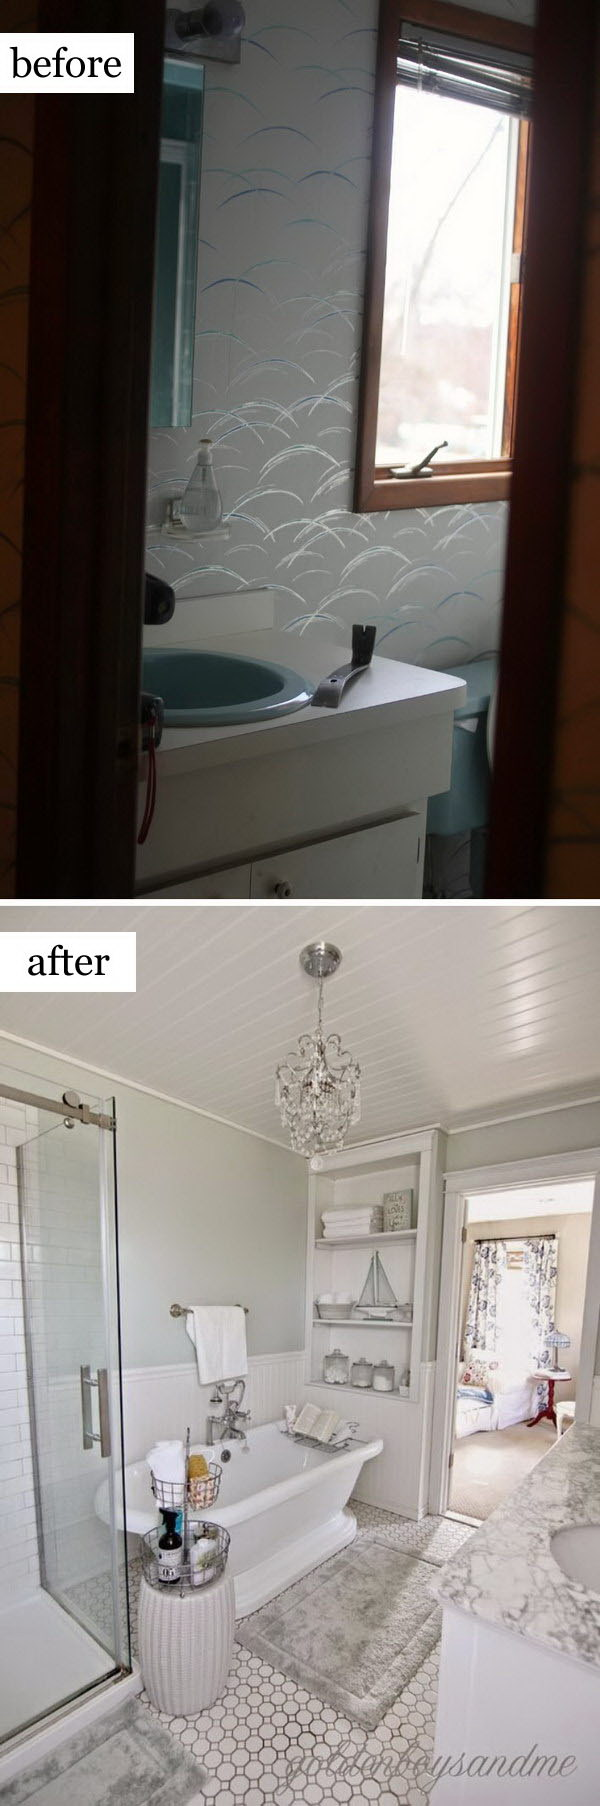 Elegant Bathroom Makeovers before and after makeovers: 20+ most beautiful bathroom remodeling